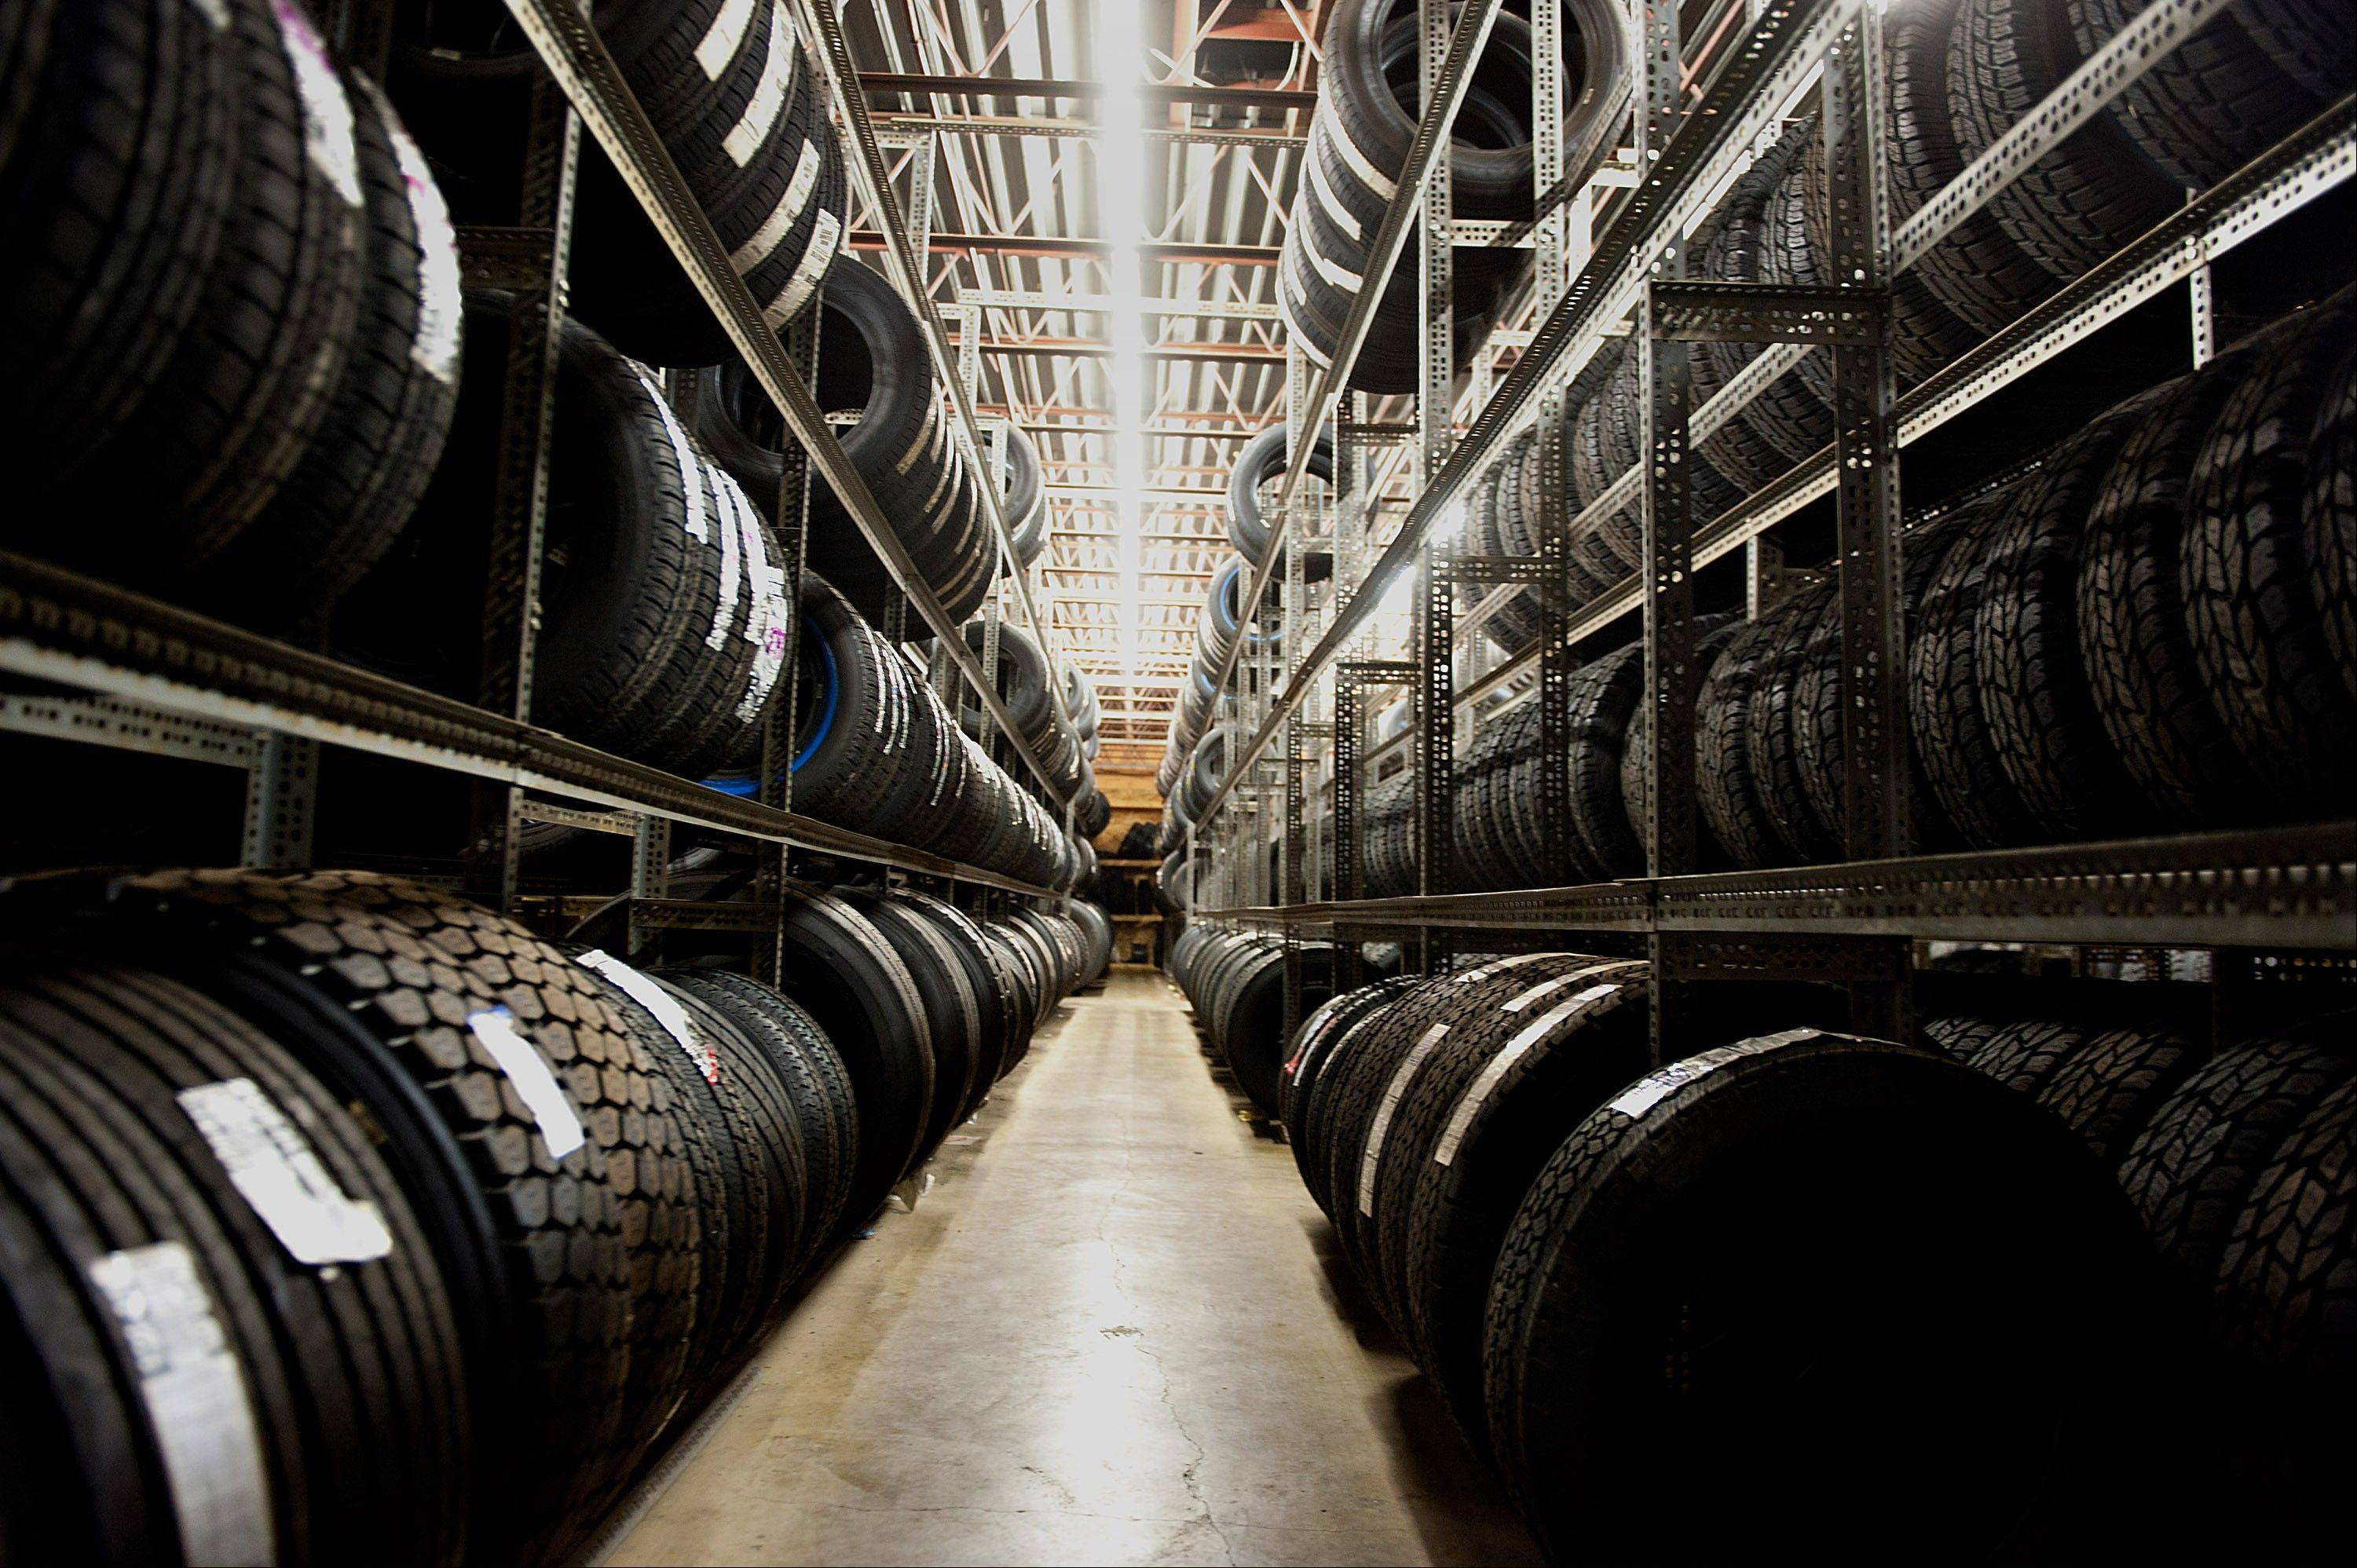 Goodyear Tire & Rubber Co. vehicle tires sit in a storage room at Keister�s Tire Center in Kewanee, Illinois.